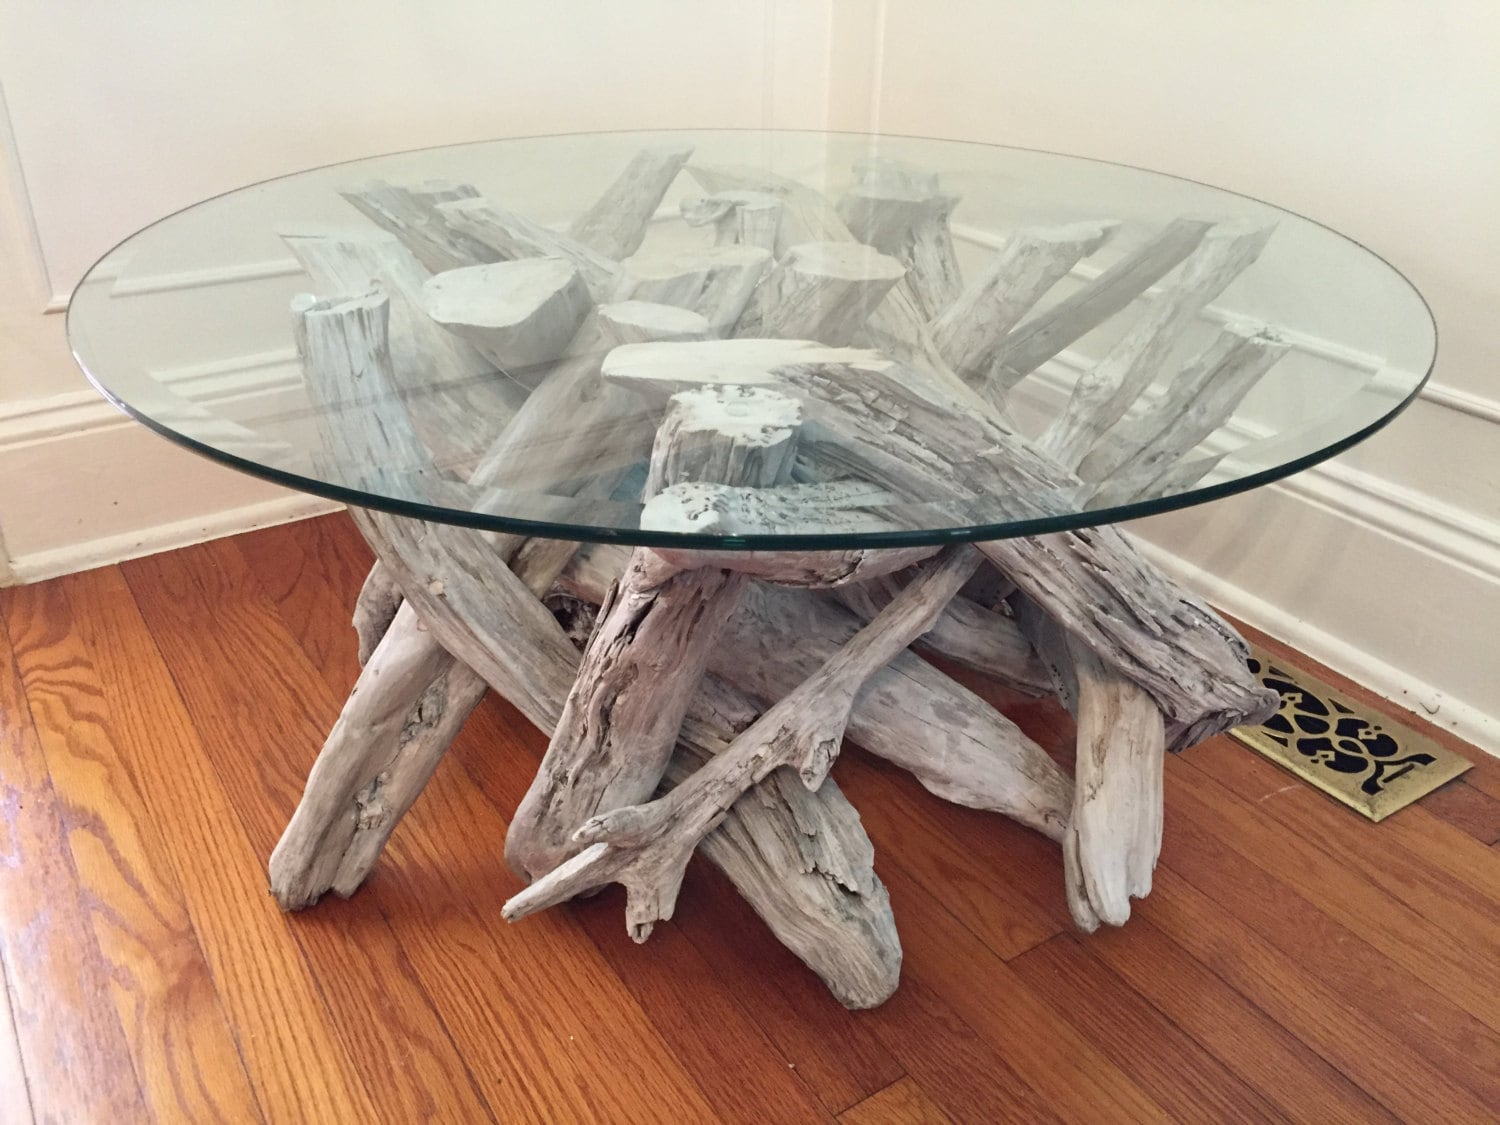 driftwood coffee table style 3 handmade from reclaimed. Black Bedroom Furniture Sets. Home Design Ideas